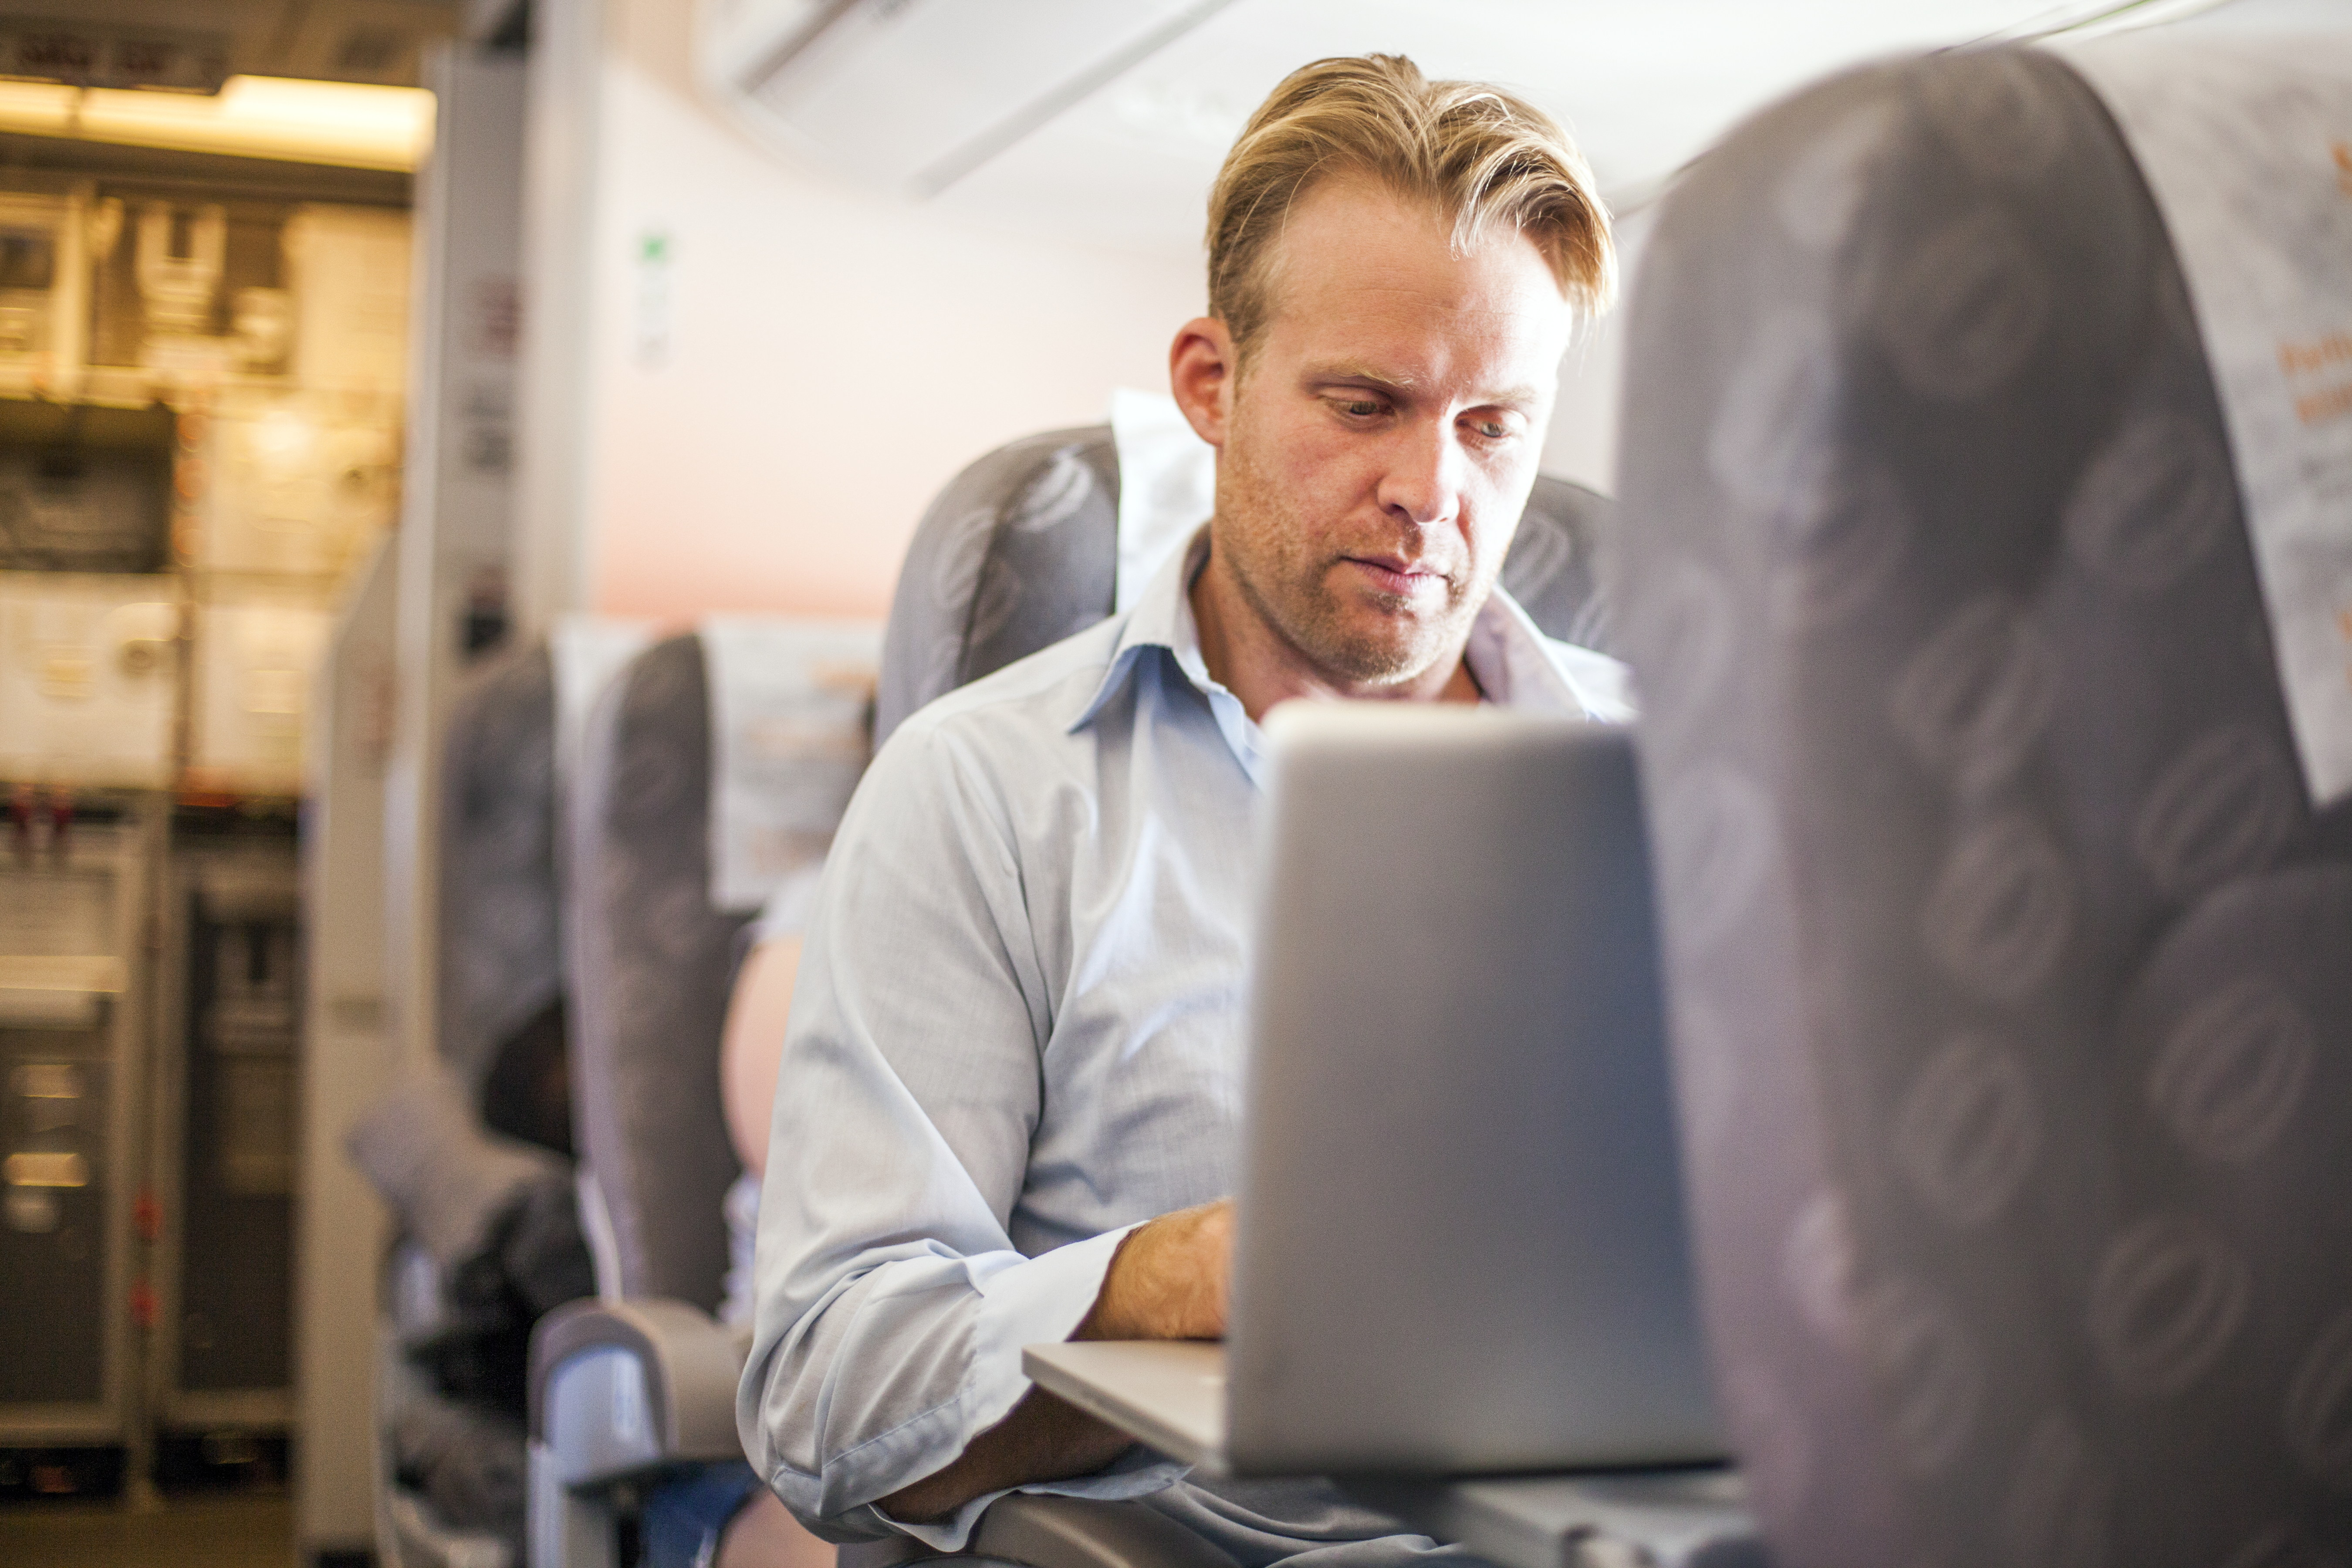 A businessman working on a lap top computer in an airplane.